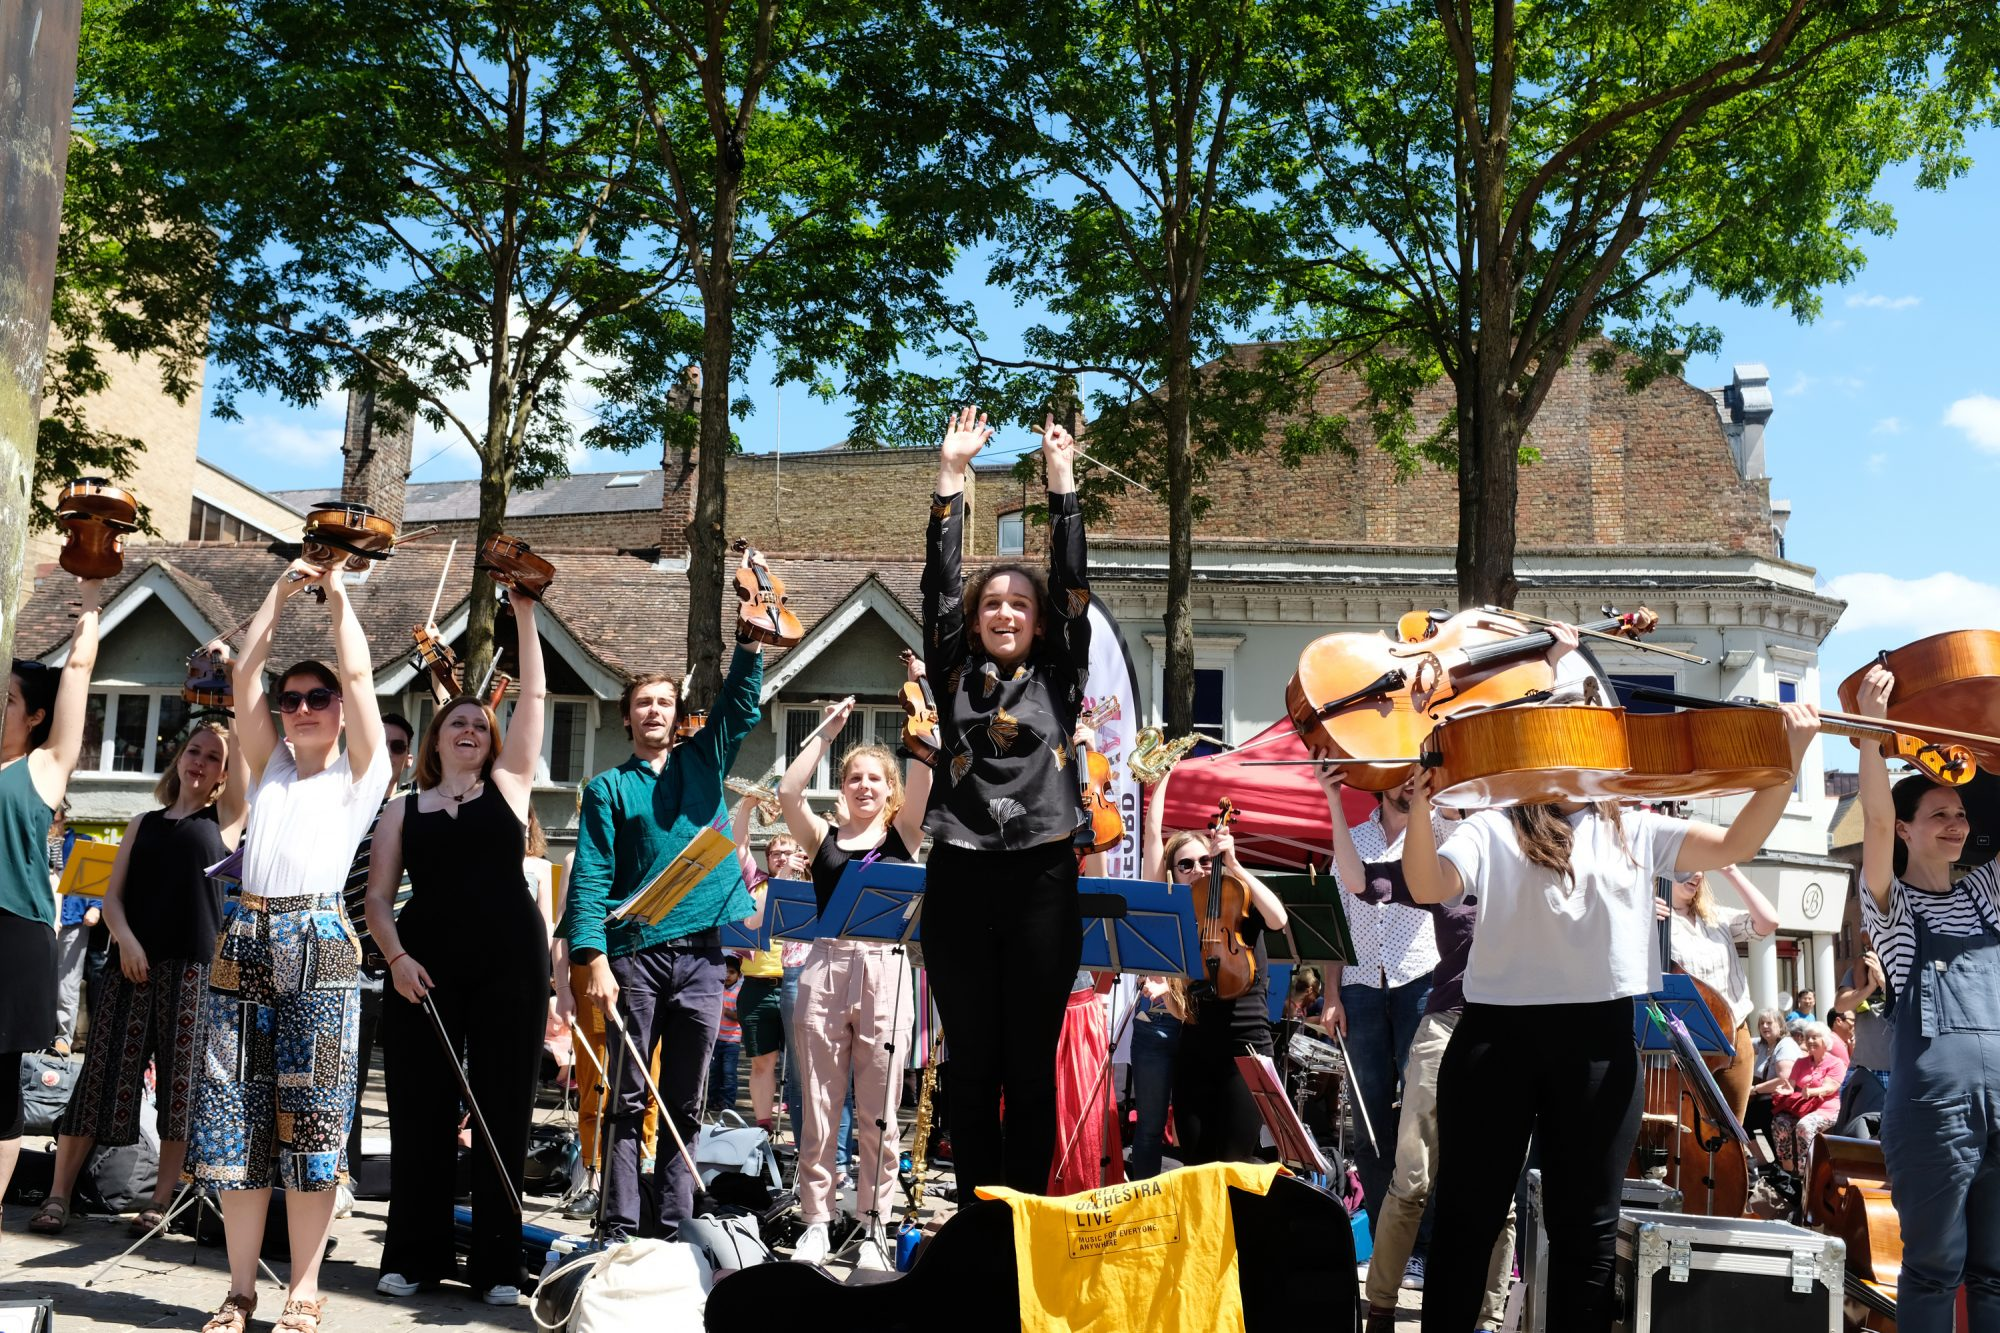 Members of Street Orchestra Live with their hands and instruments in the air during a live concert in Oxford's Bonn Square